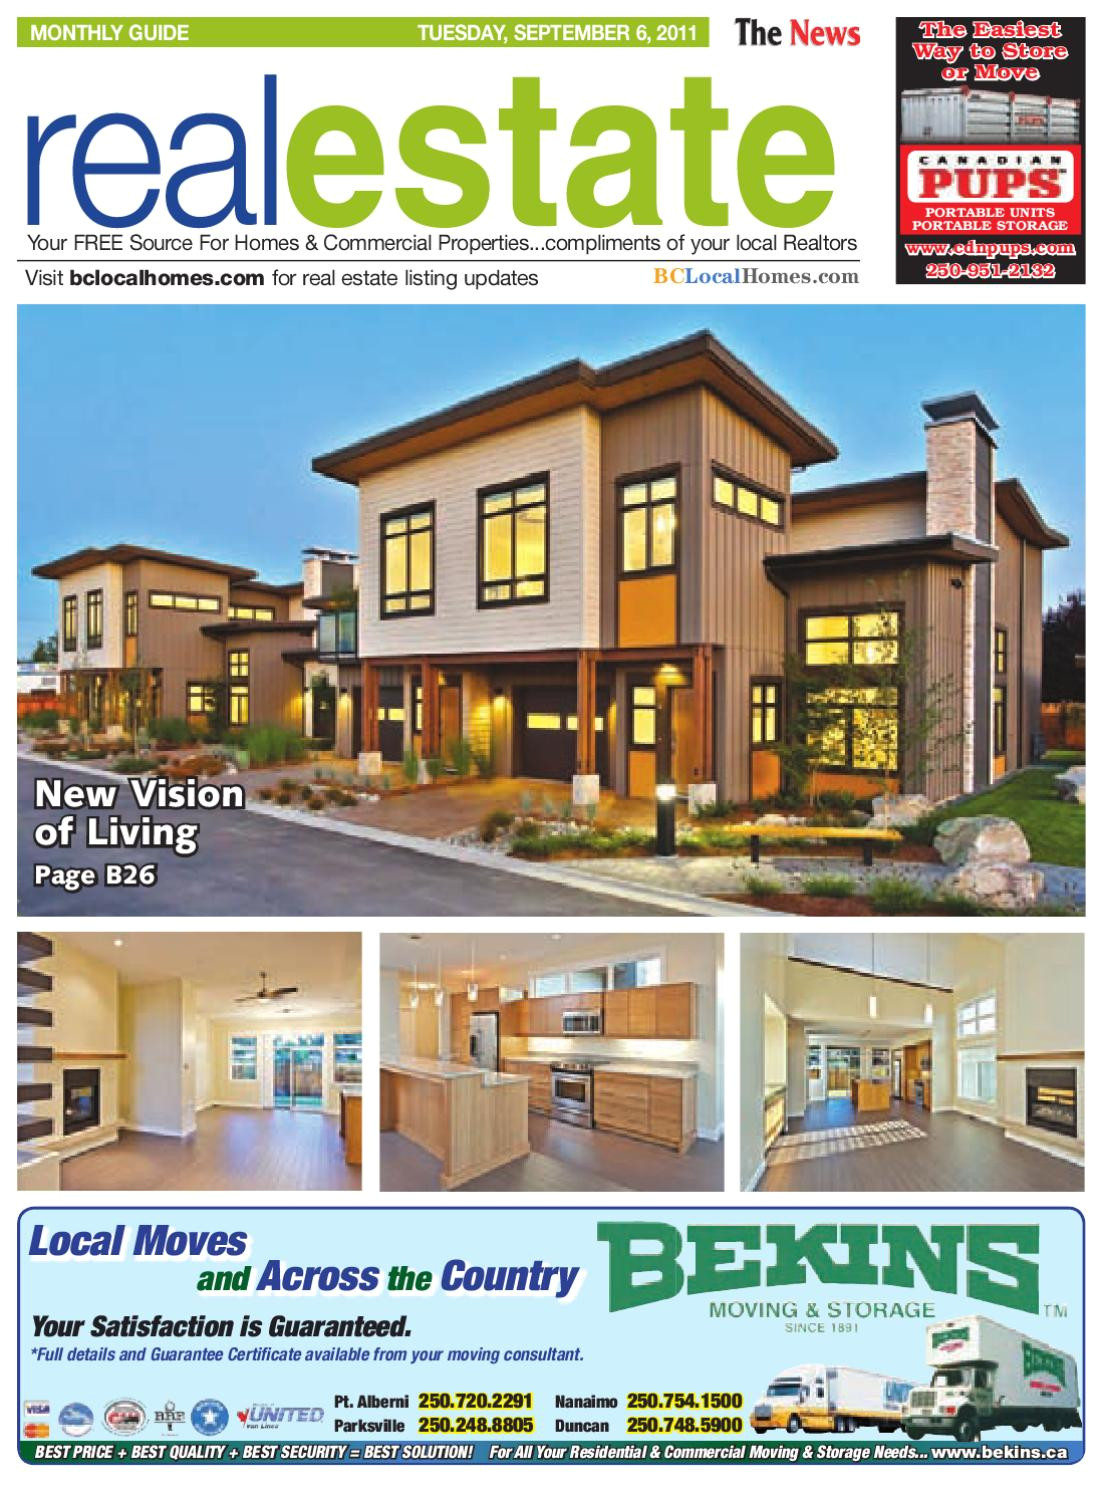 parksville qualicum beach news monthly real estate guide tuesday september 6 2011 by parksville qualicum beach news issuu